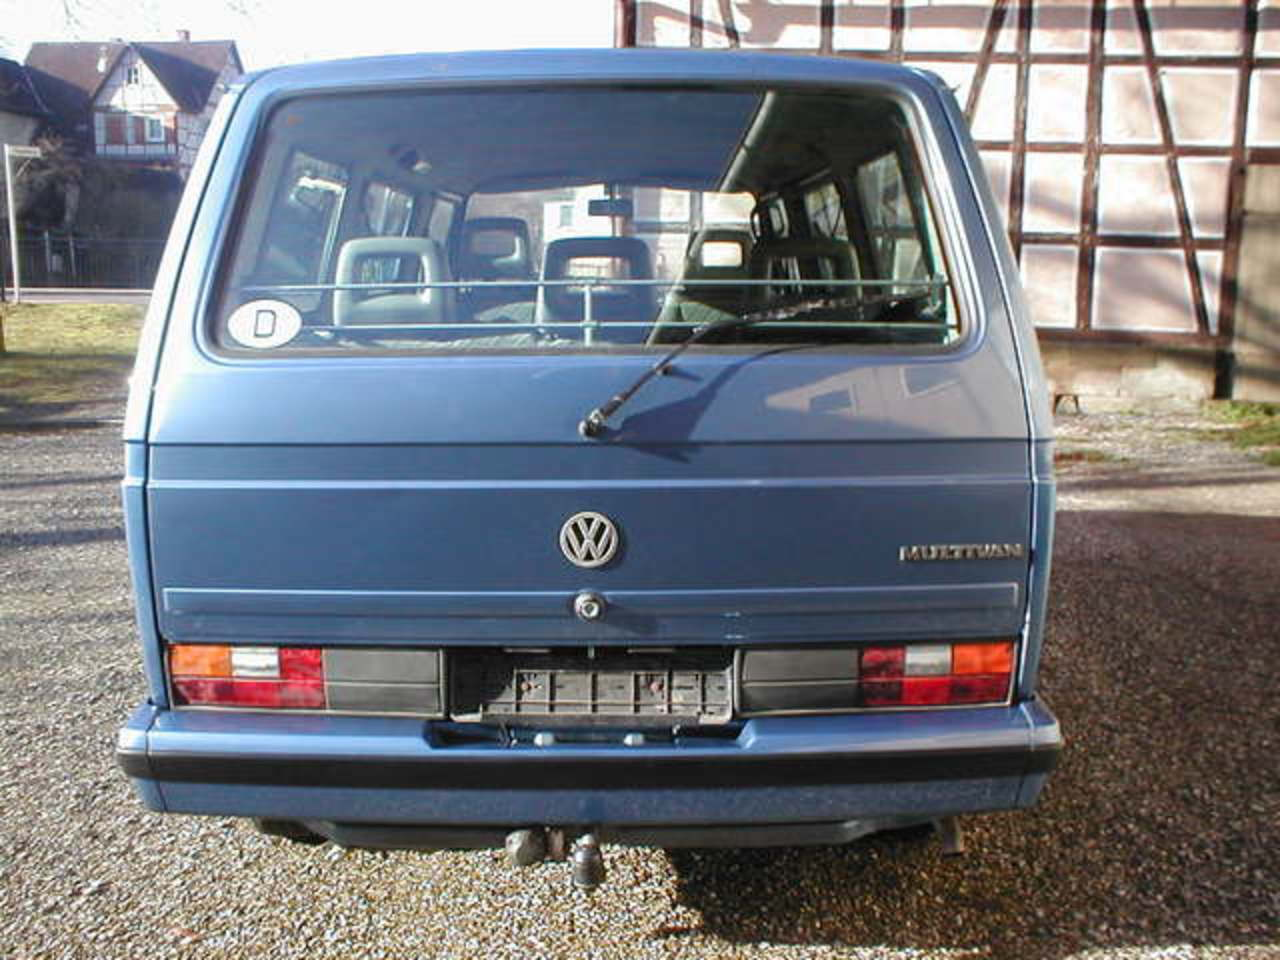 T3 Multivan Volkswagen Blue metallic | all volkswagen images